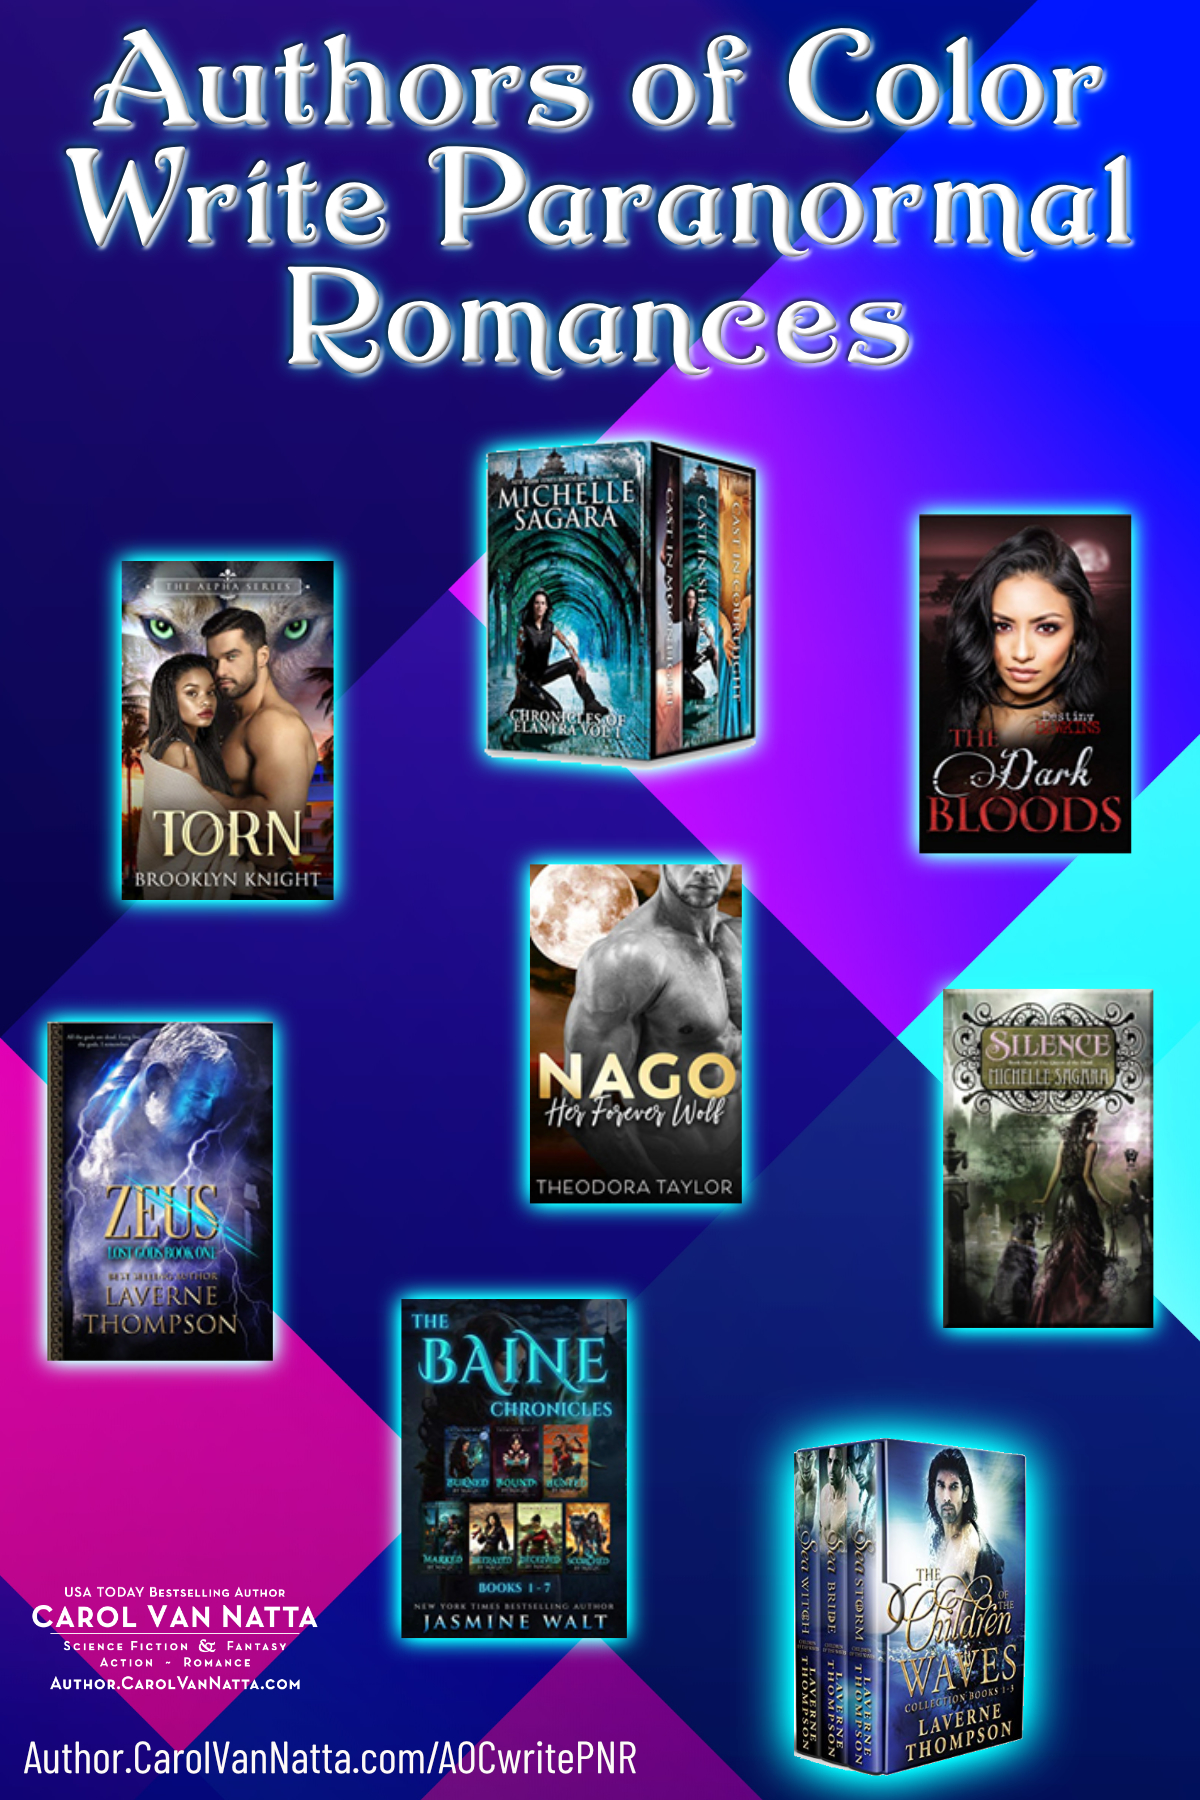 Paranormal Romances by Authors of Color